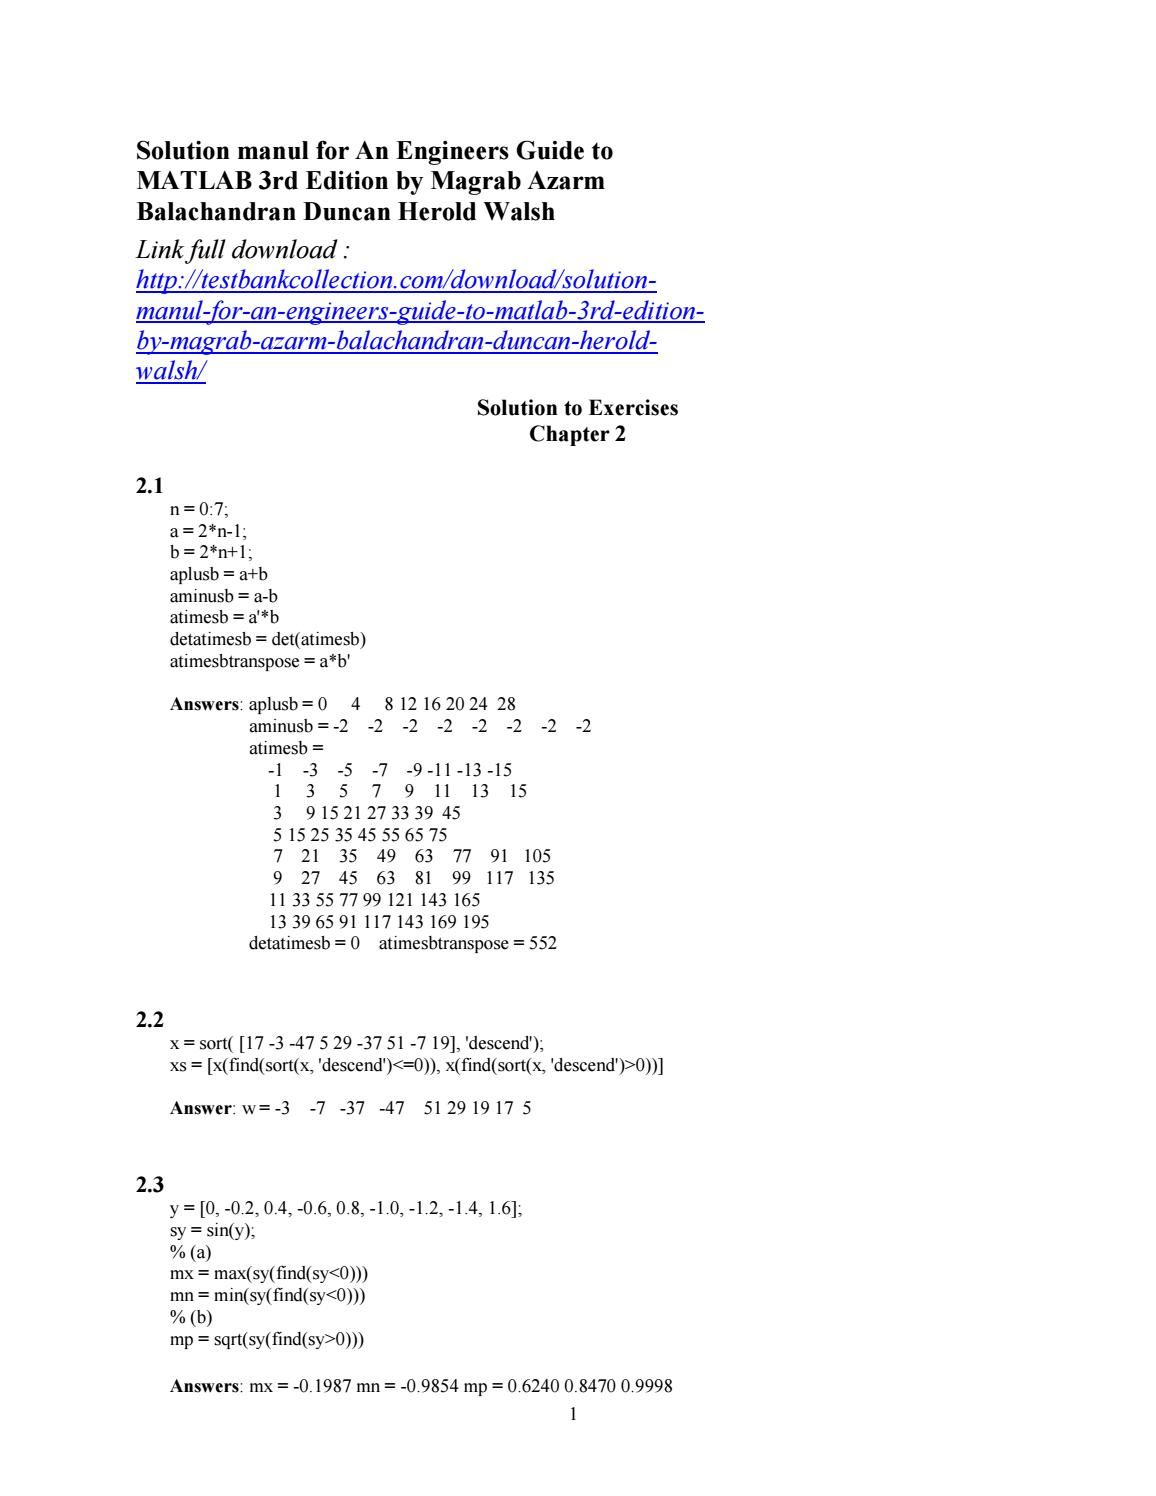 download solution manual for an engineers guide to matlab 3rd rh pinterest com MATLAB Meme MATLAB Program Examples